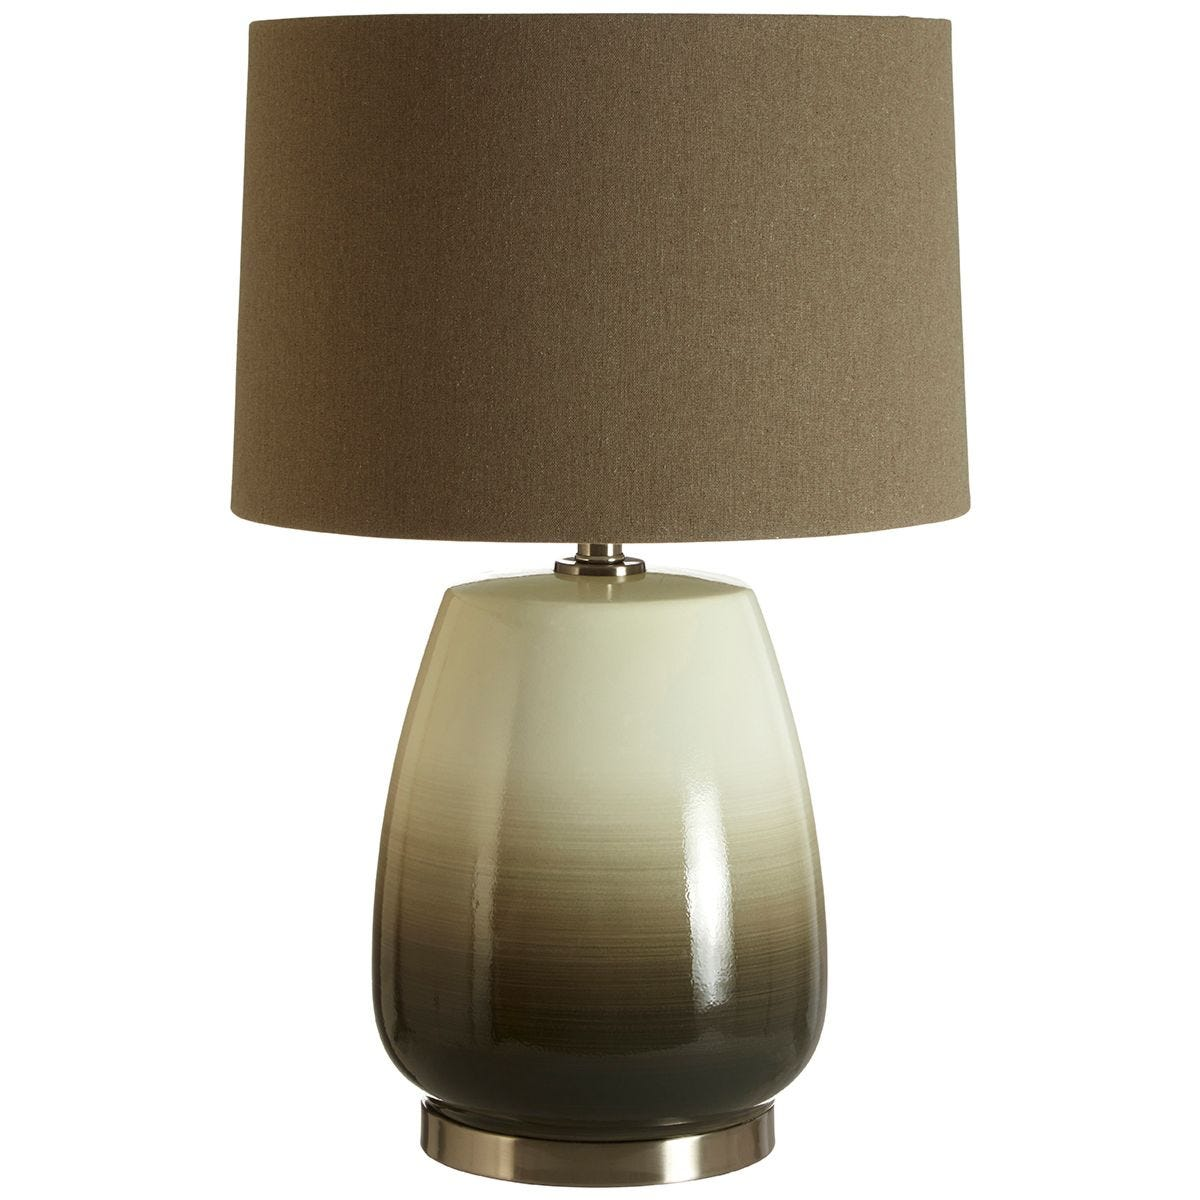 Premier Housewares Unice Table Lamp Green with Grey Linen Shade